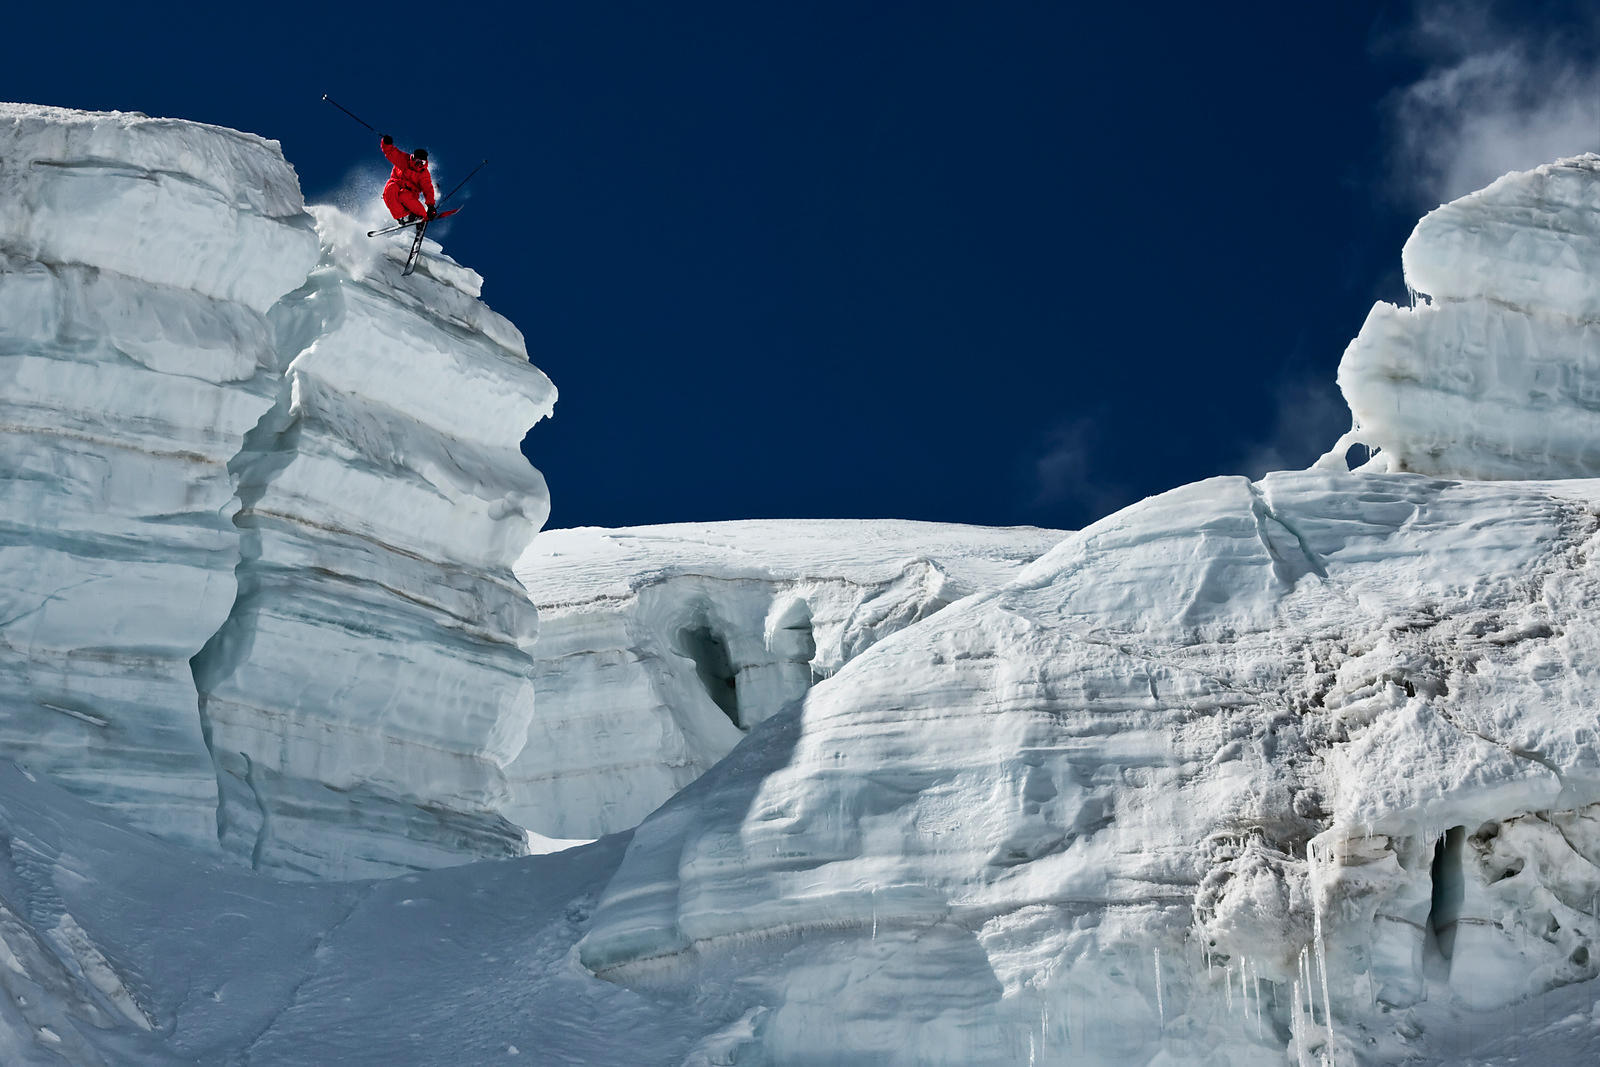 Jumping Ice Cliff with Guerlain Chicherit